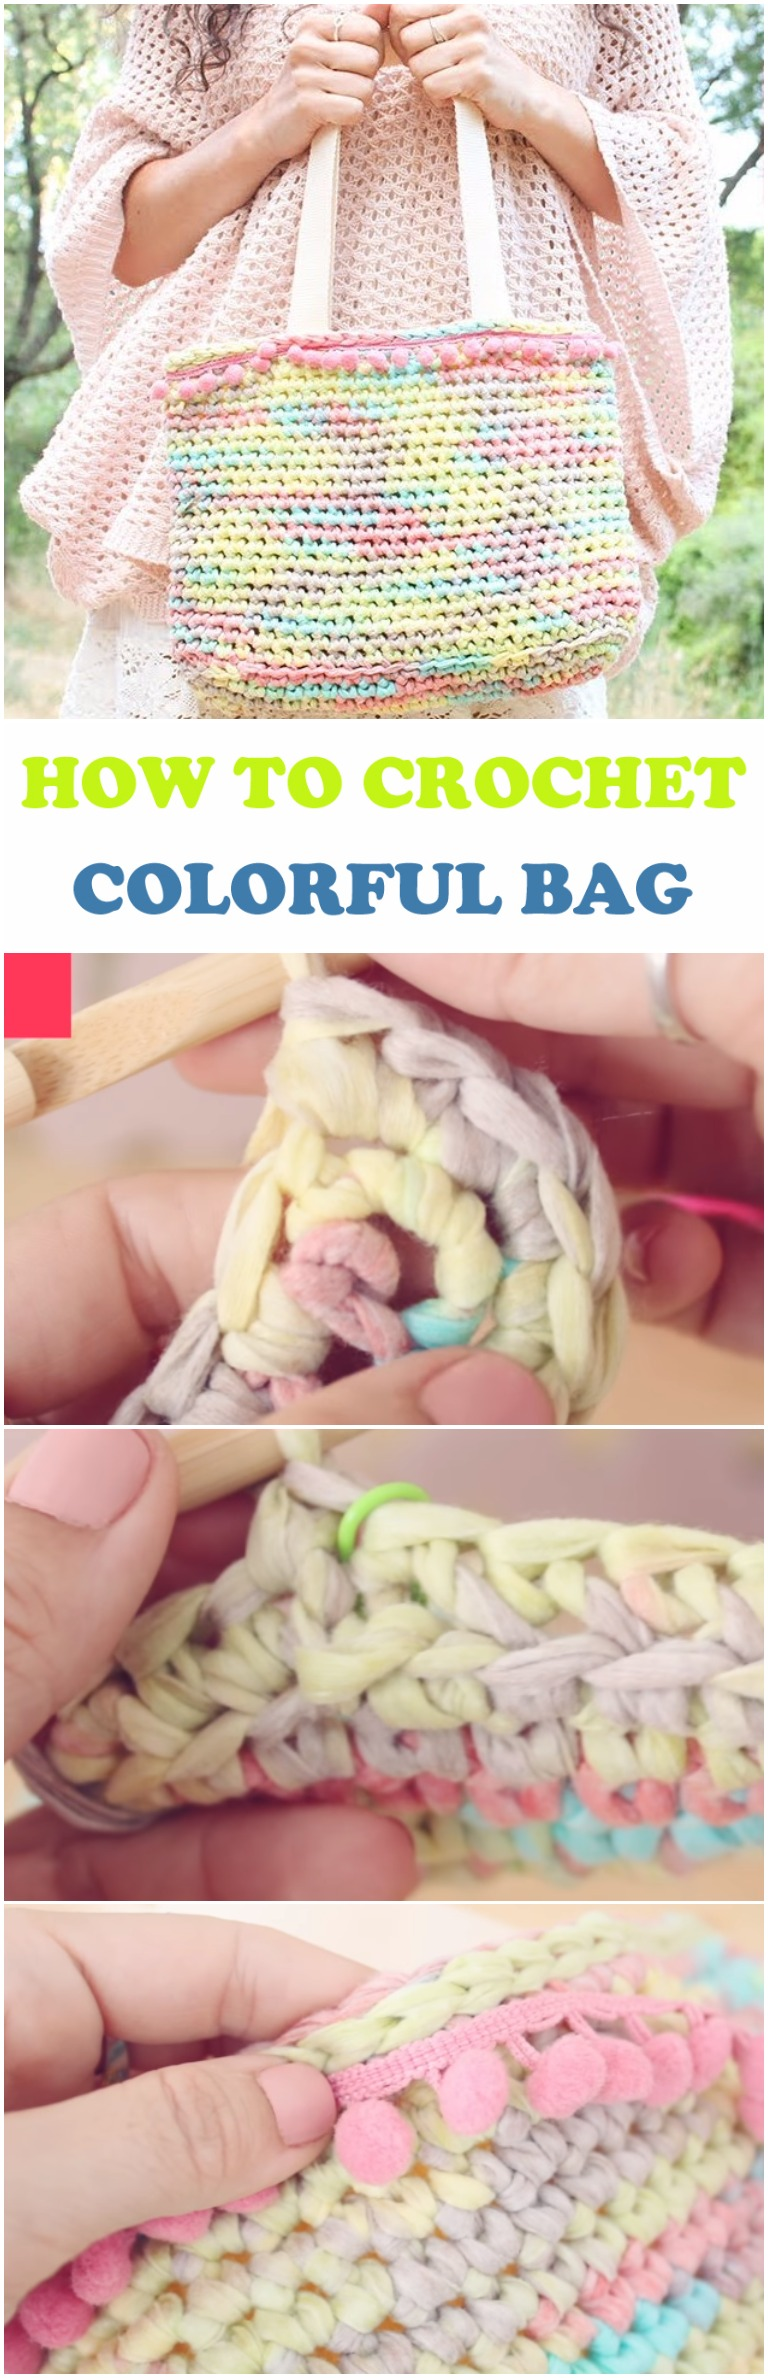 Learn To Crochet Colorful Bag